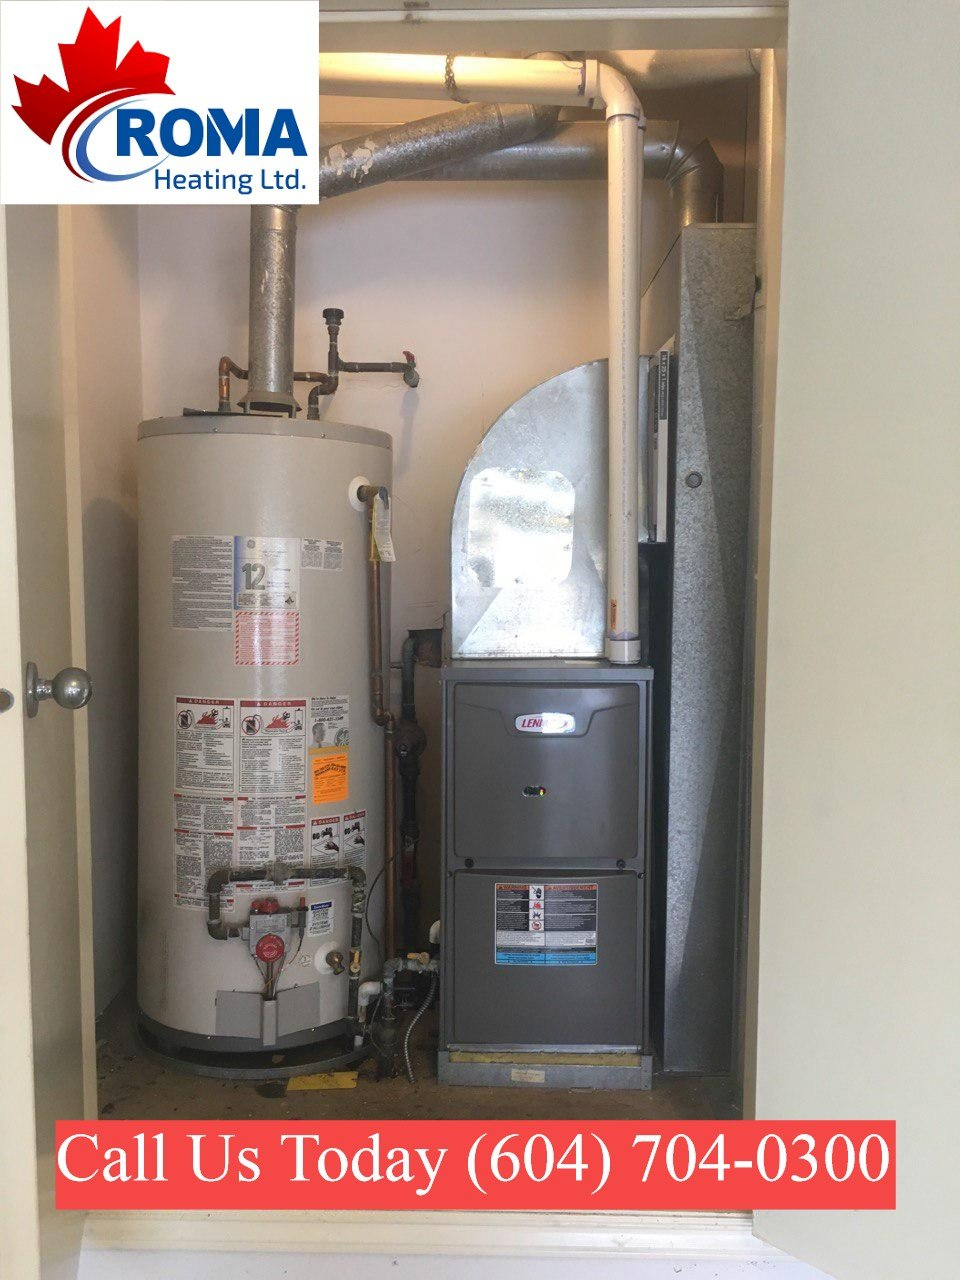 , romaheating projects furnace installation repair